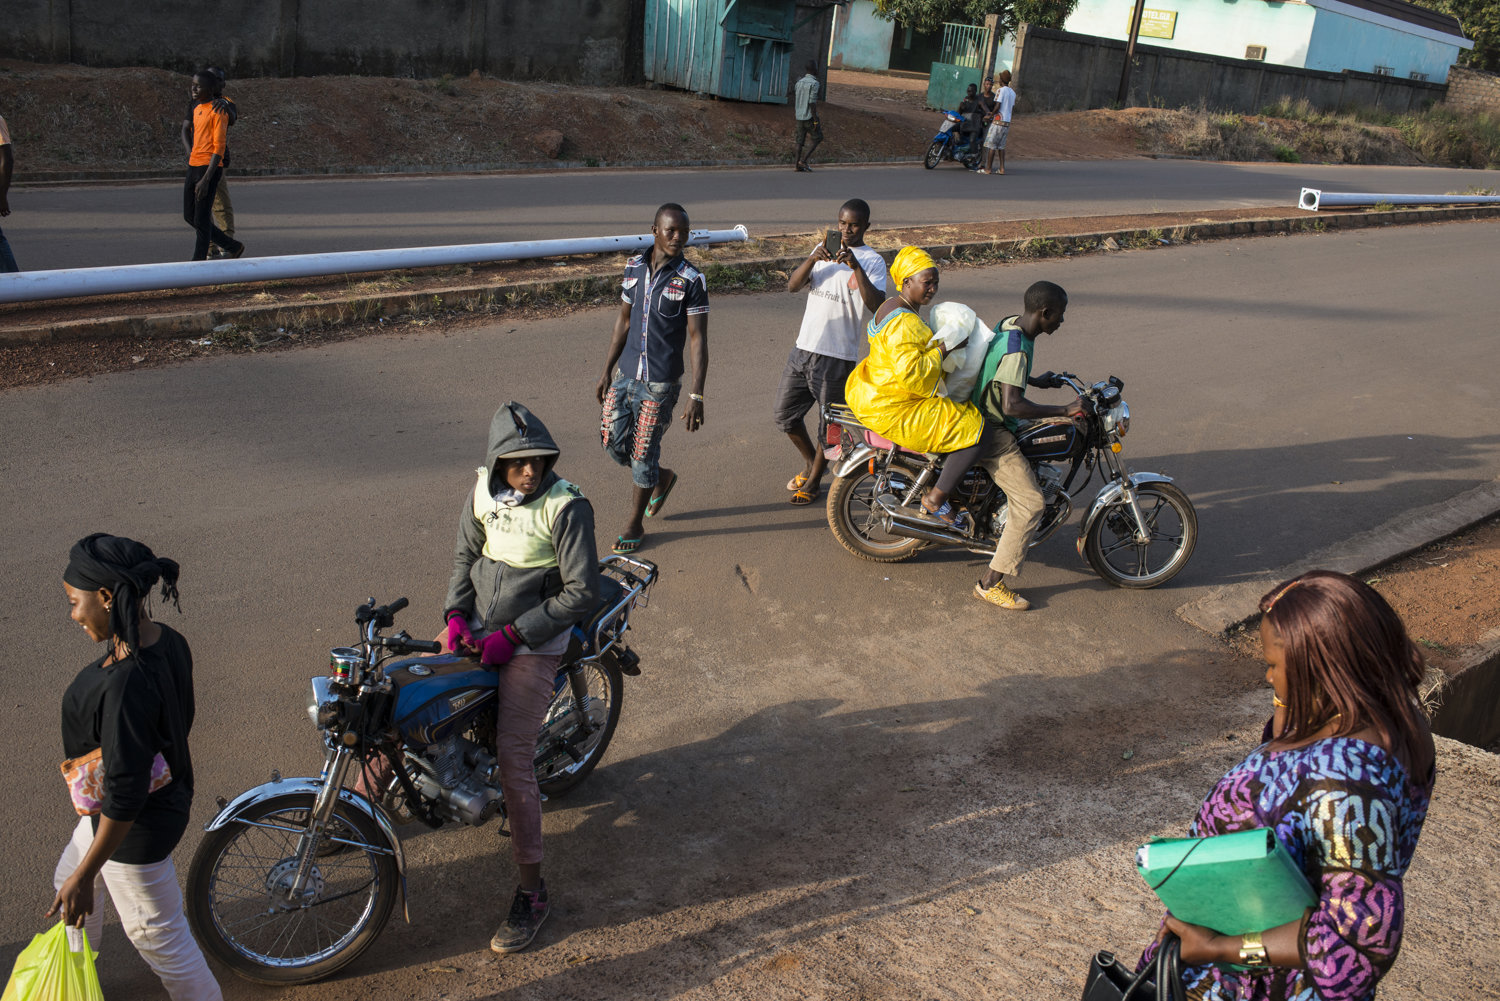 Students leave the final day of training and take motorbikes or walk to their homes.